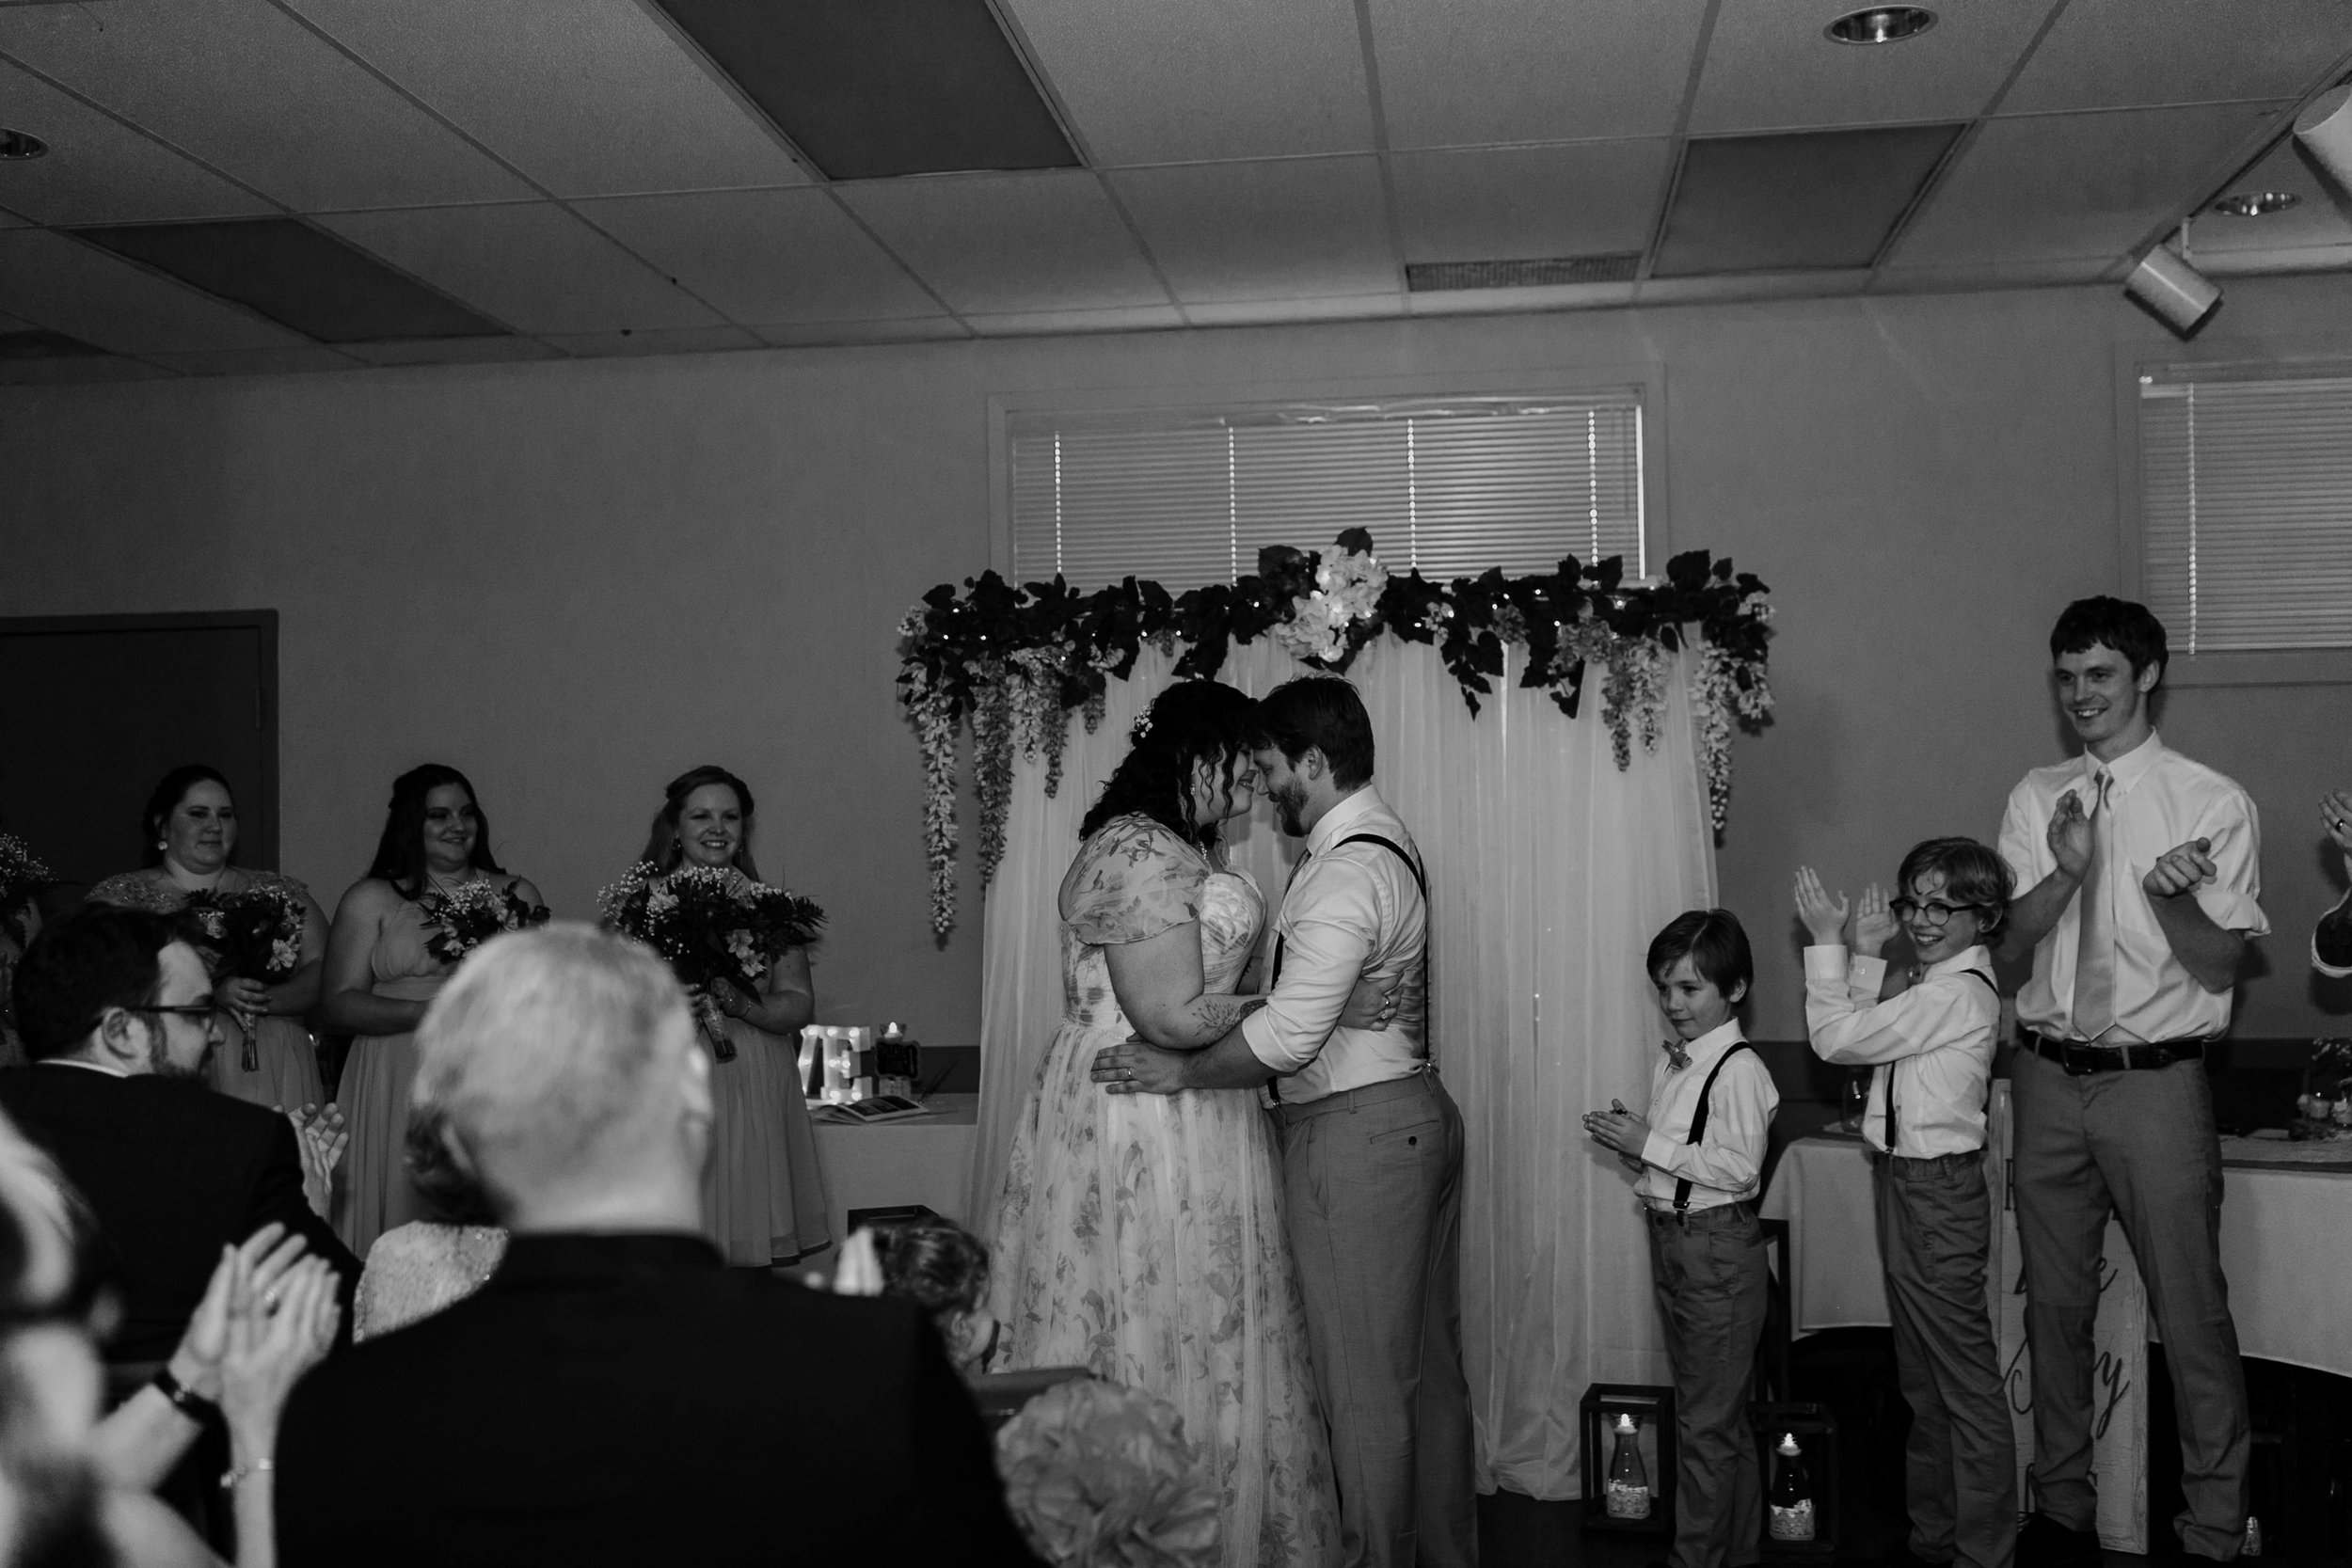 CrystalJessuppeterboroughwedding (33 of 79).jpg